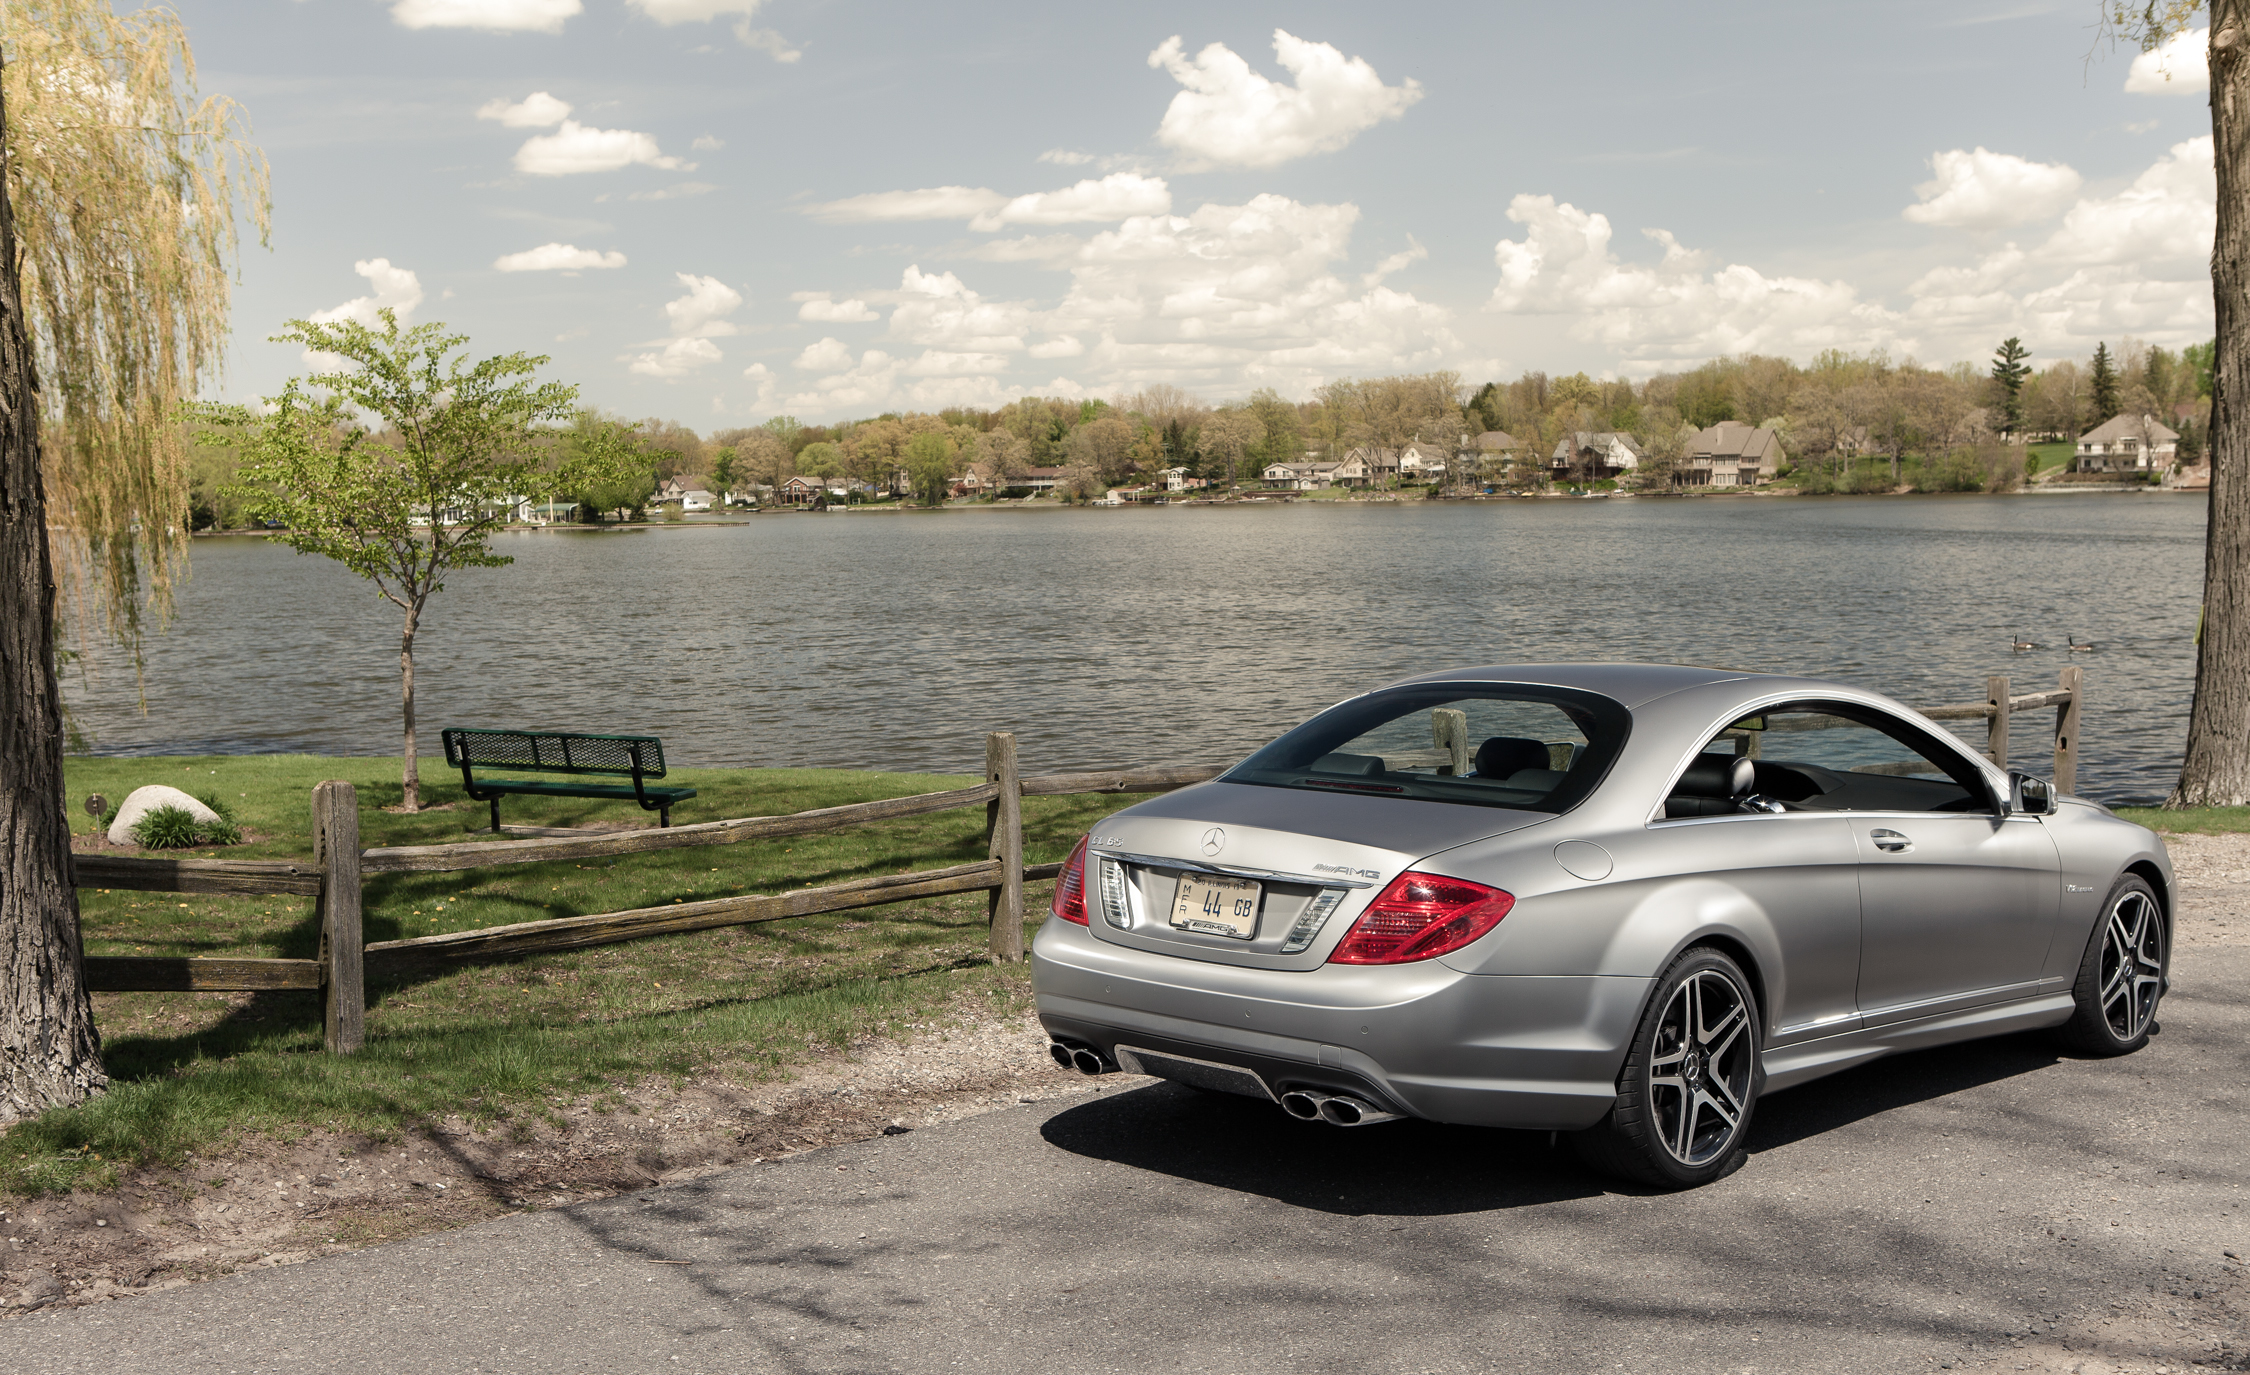 2013 Mercedes Benz CL65 AMG Exterior Rear And Side (Photo 3 of 27)